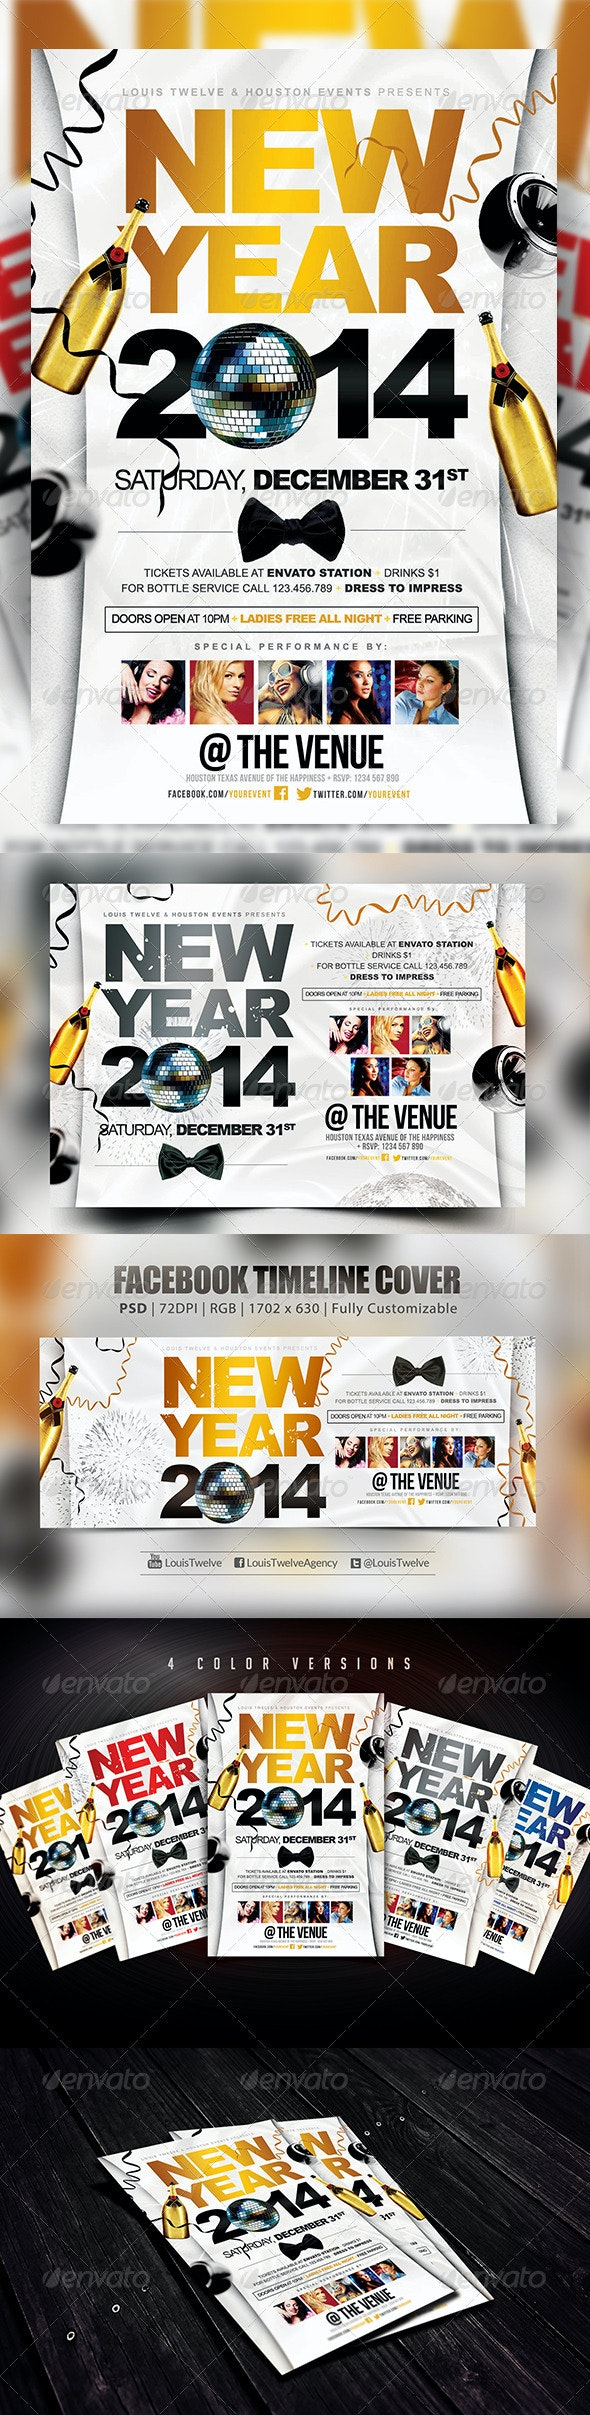 New Year Party | Flyers + FB Cover - Holidays Events